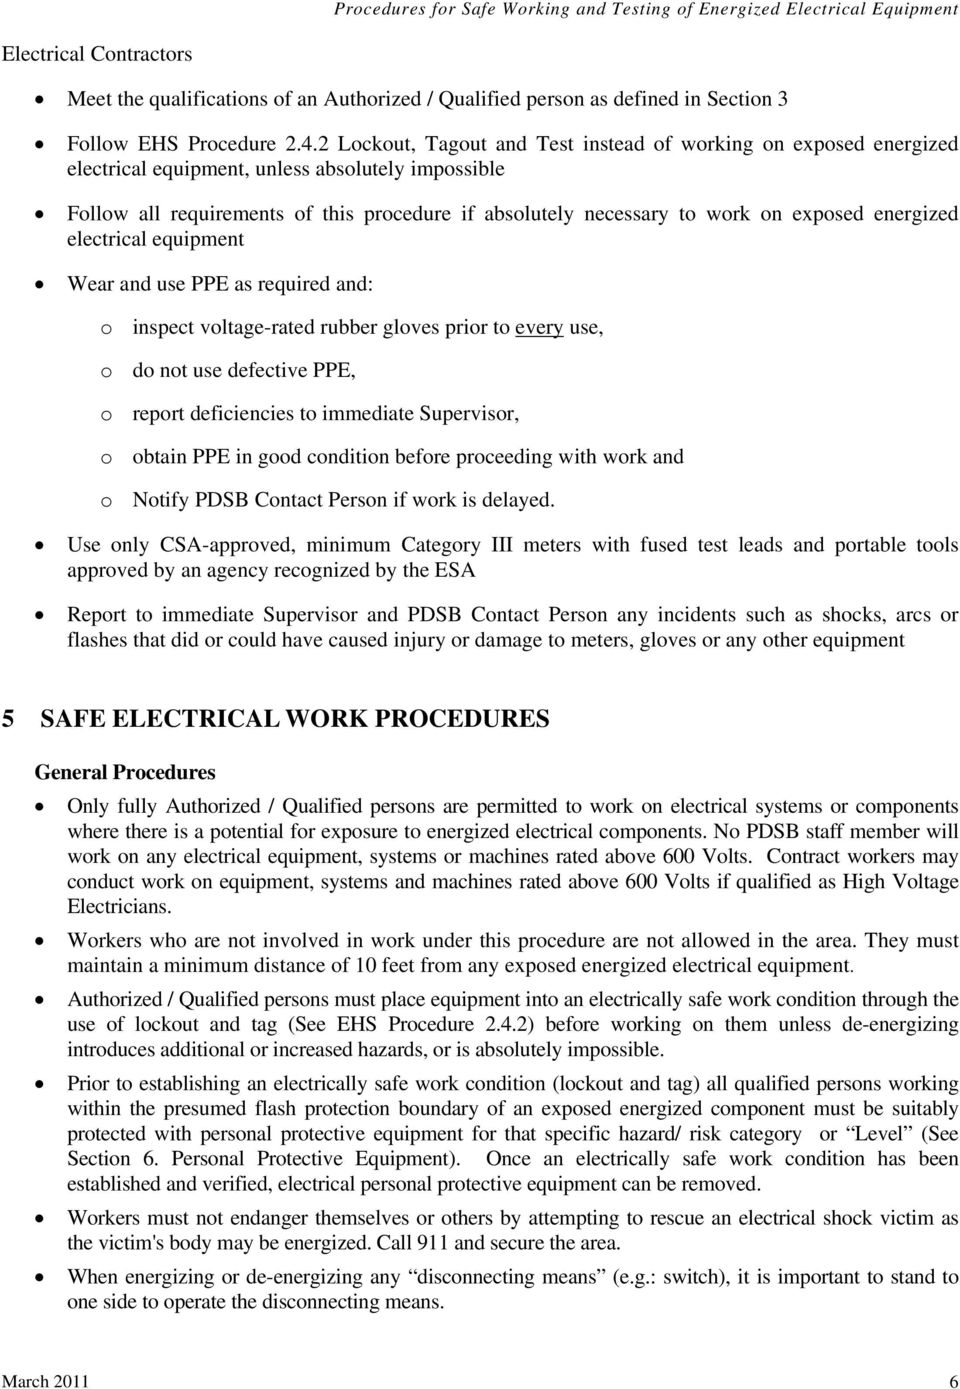 exposed energized electrical equipment Wear and use PPE as required and: o inspect voltage-rated rubber gloves prior to every use, o do not use defective PPE, o report deficiencies to immediate